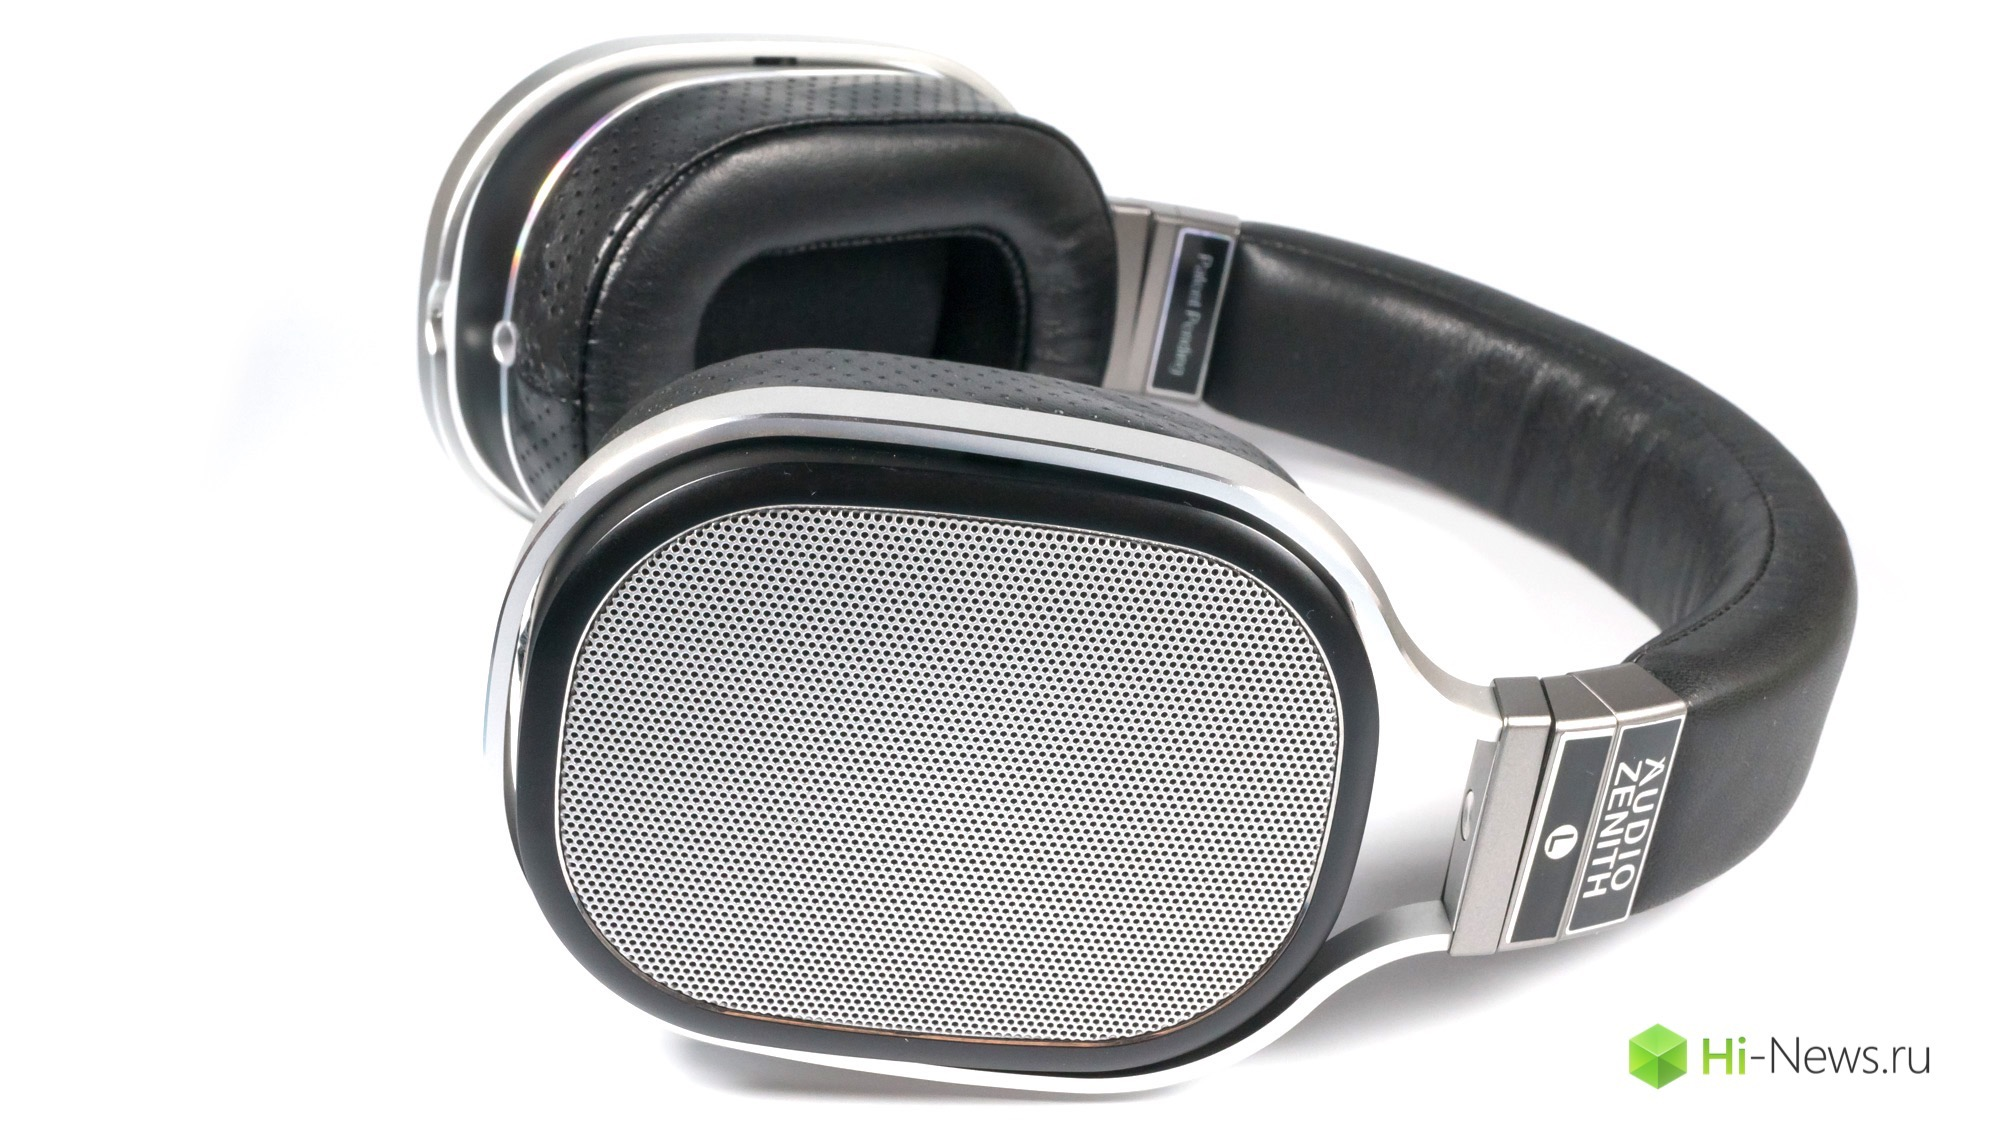 Review 2 version headphone Audio PMx2v2 Zenith as one of the favourites